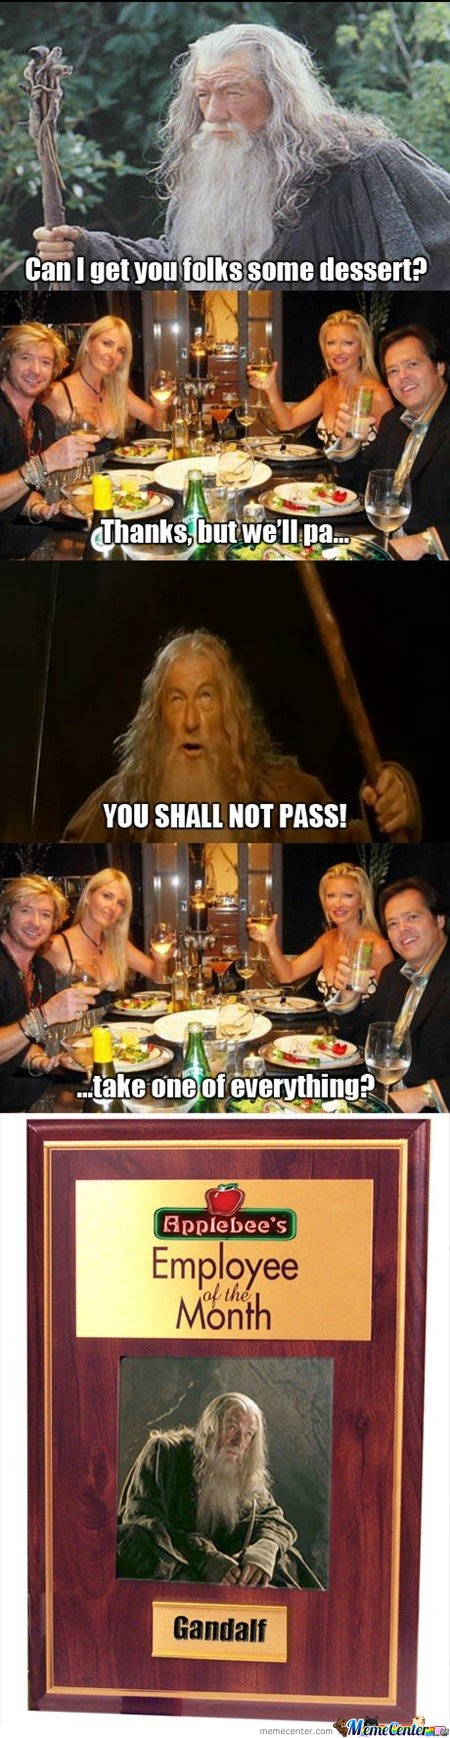 Employee of the month - Gandalf